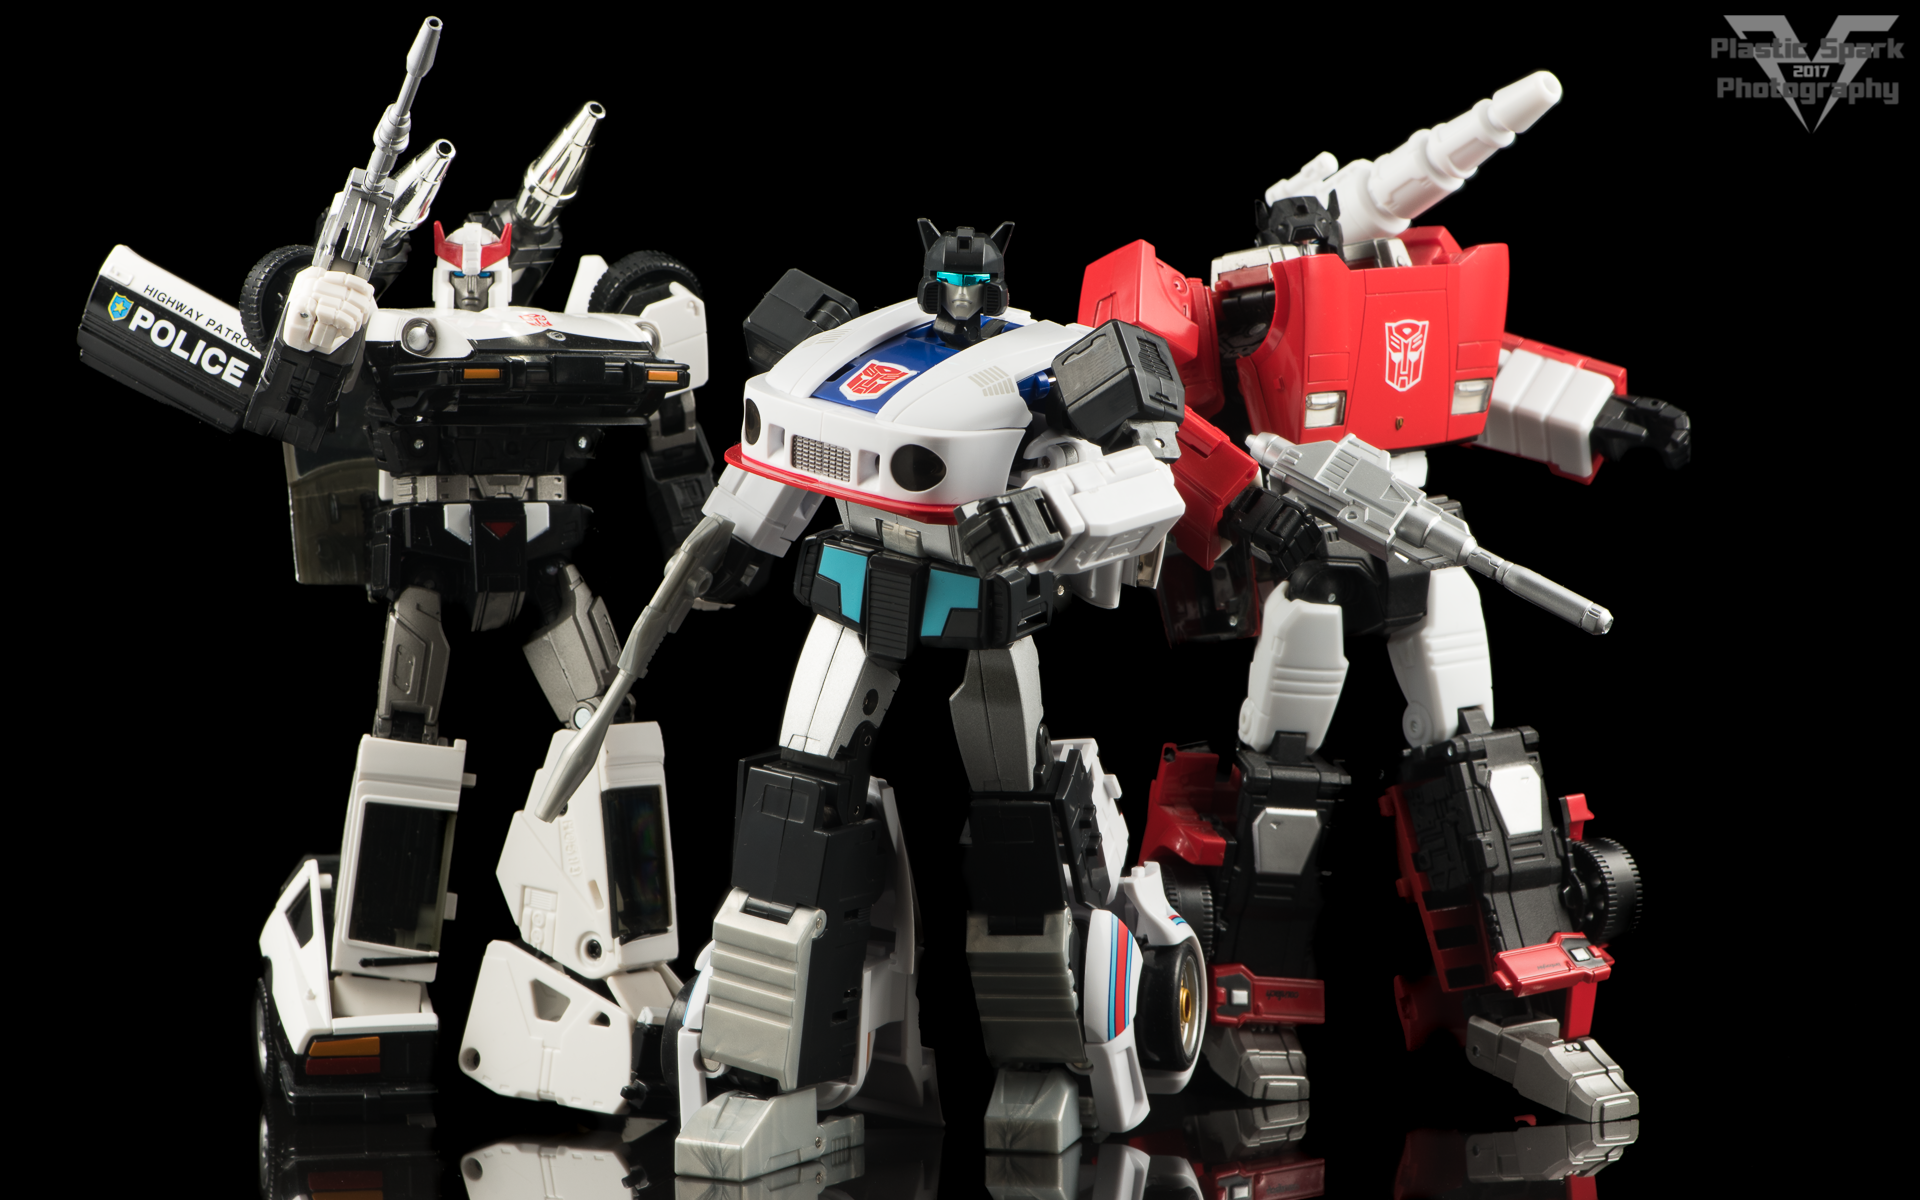 MakeToys-Re-Master-MTRM-09-Downbeat--(3-of-42).png